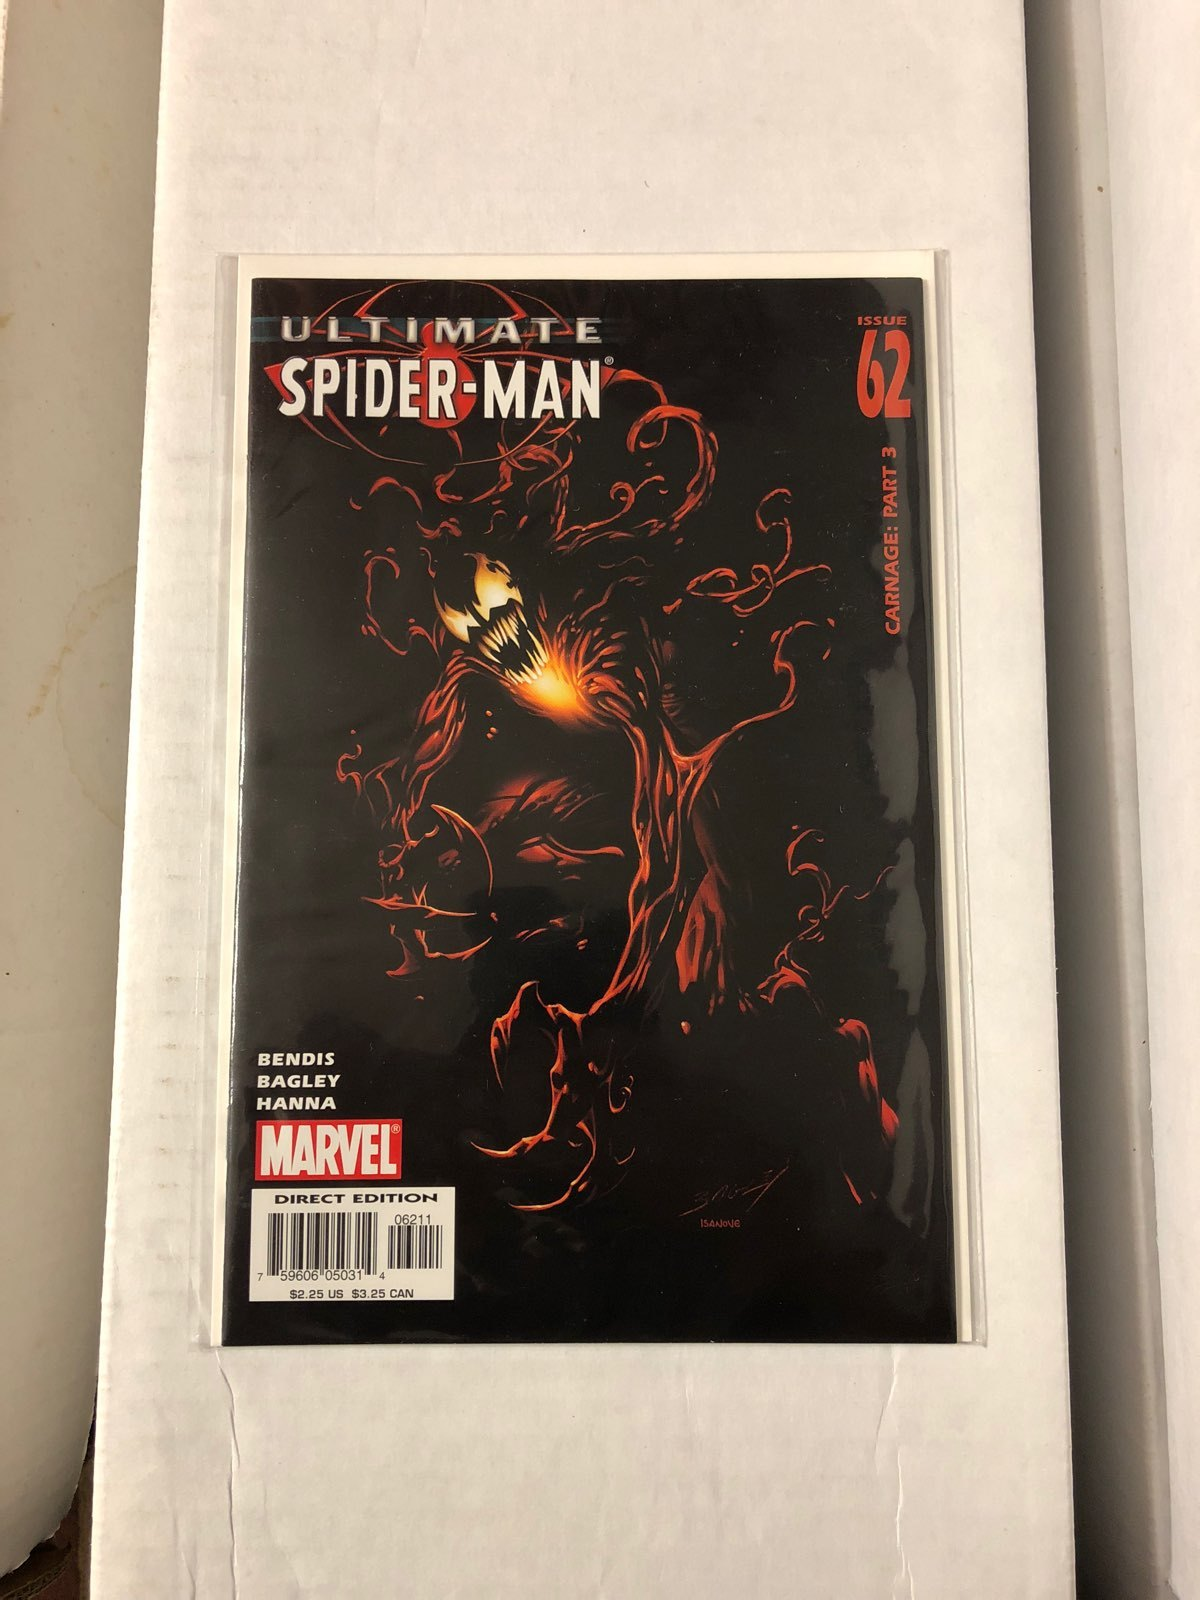 Ultimate Spider-Man #62